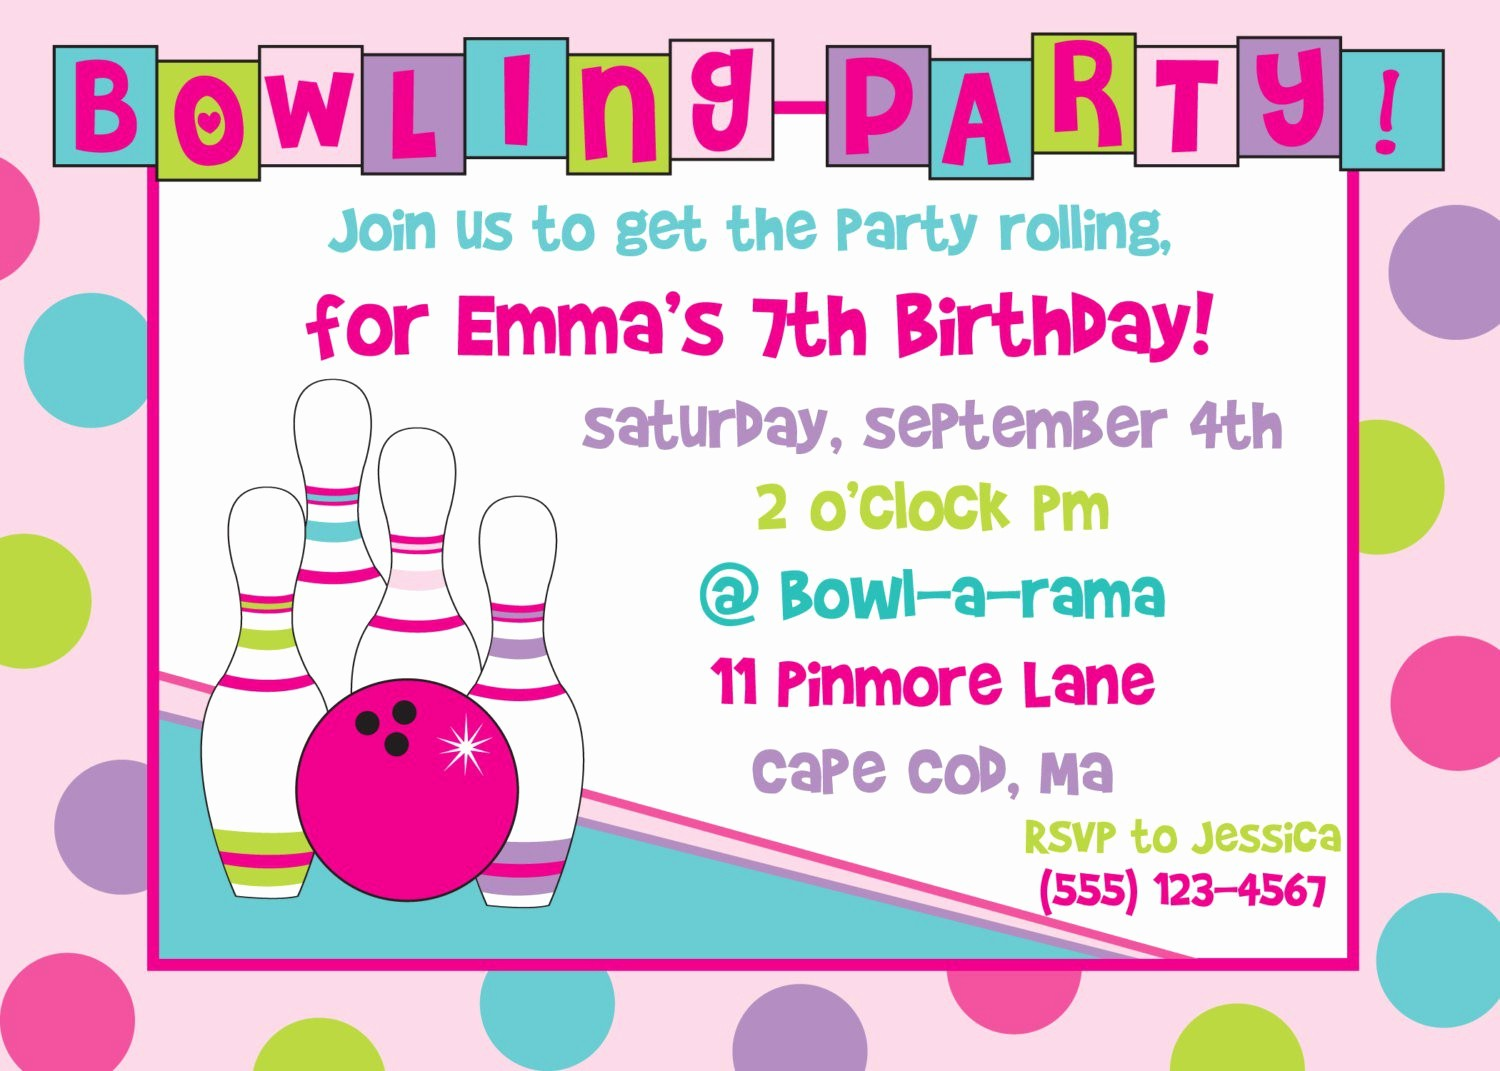 Free Printable Party Invitations Templates Unique Bowling Birthday Party Invitations Free Templates